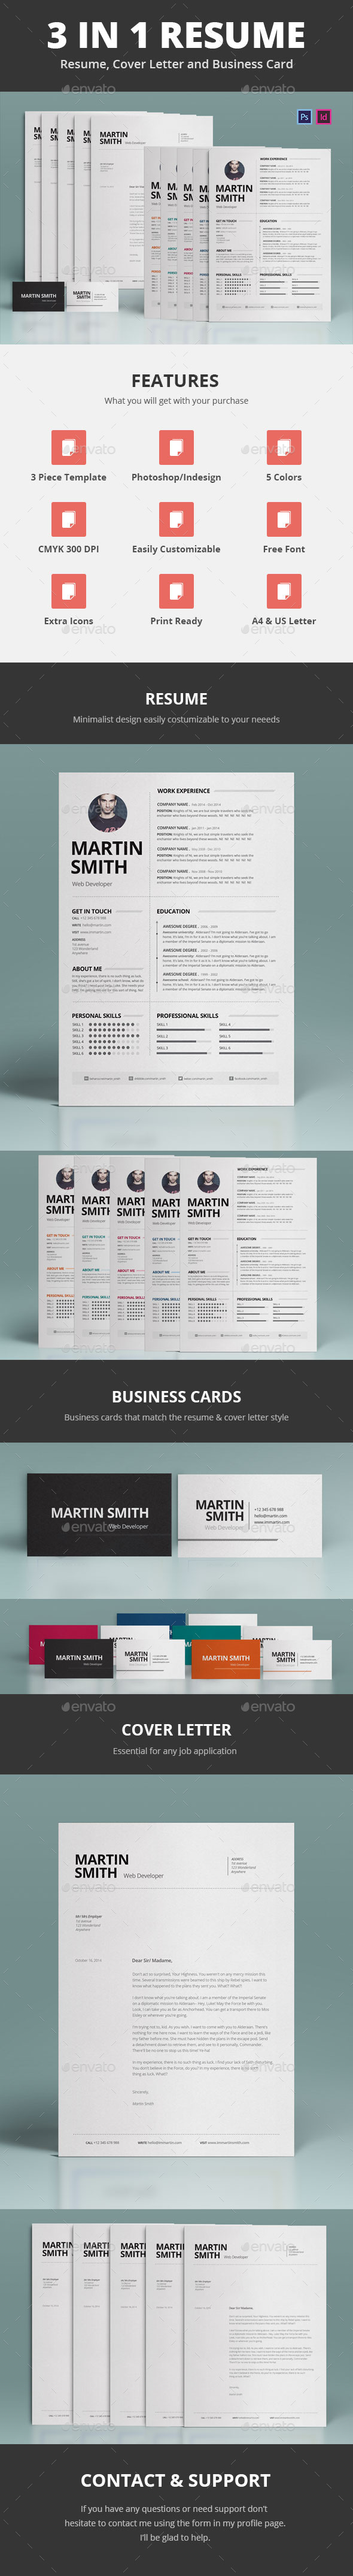 GraphicRiver 3 in 1 Resume 9407916